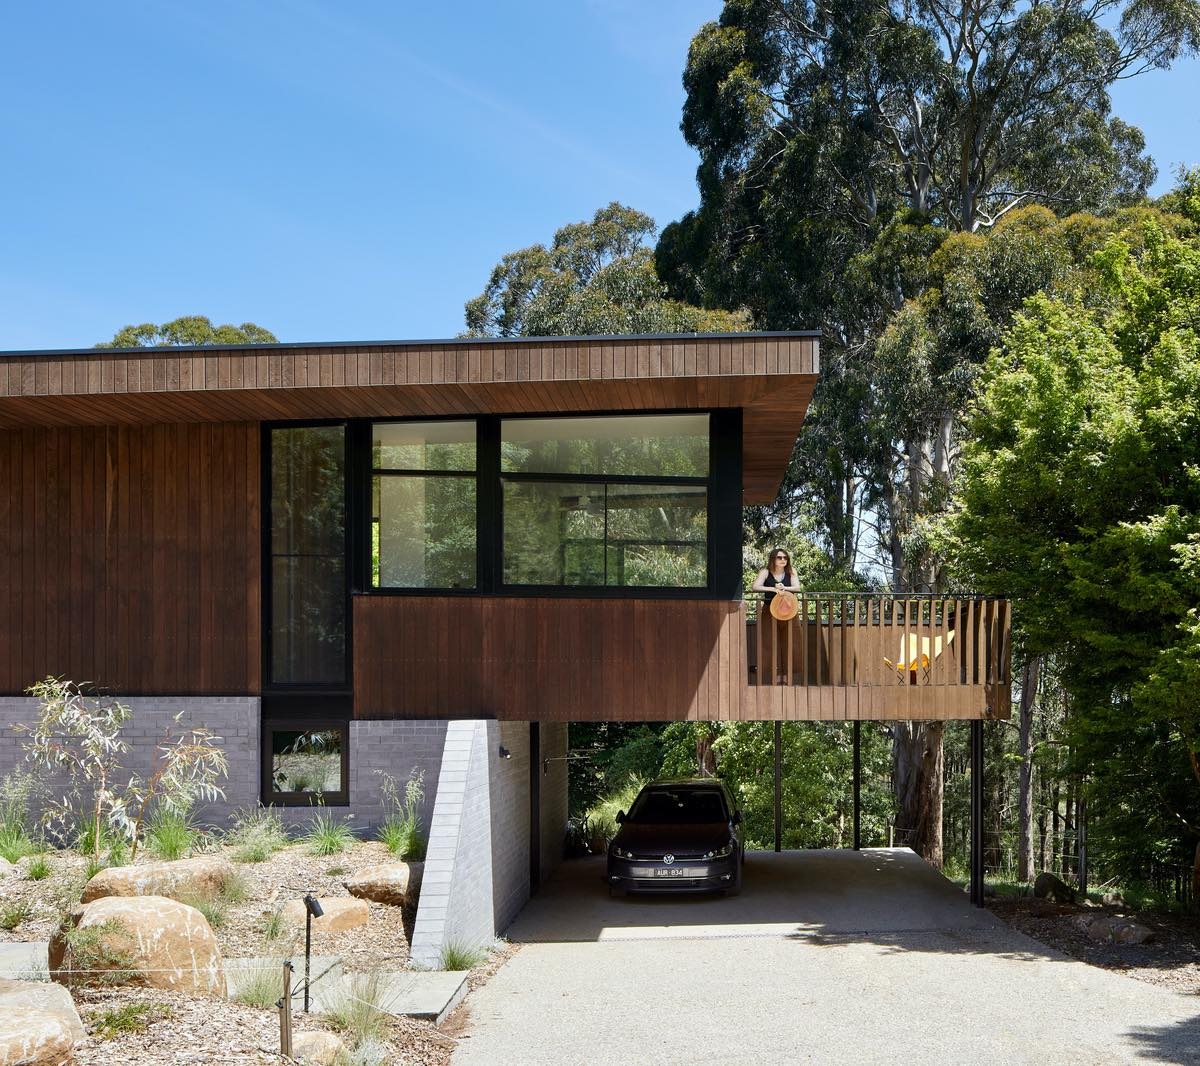 Olinda House designed by BENT Architecture